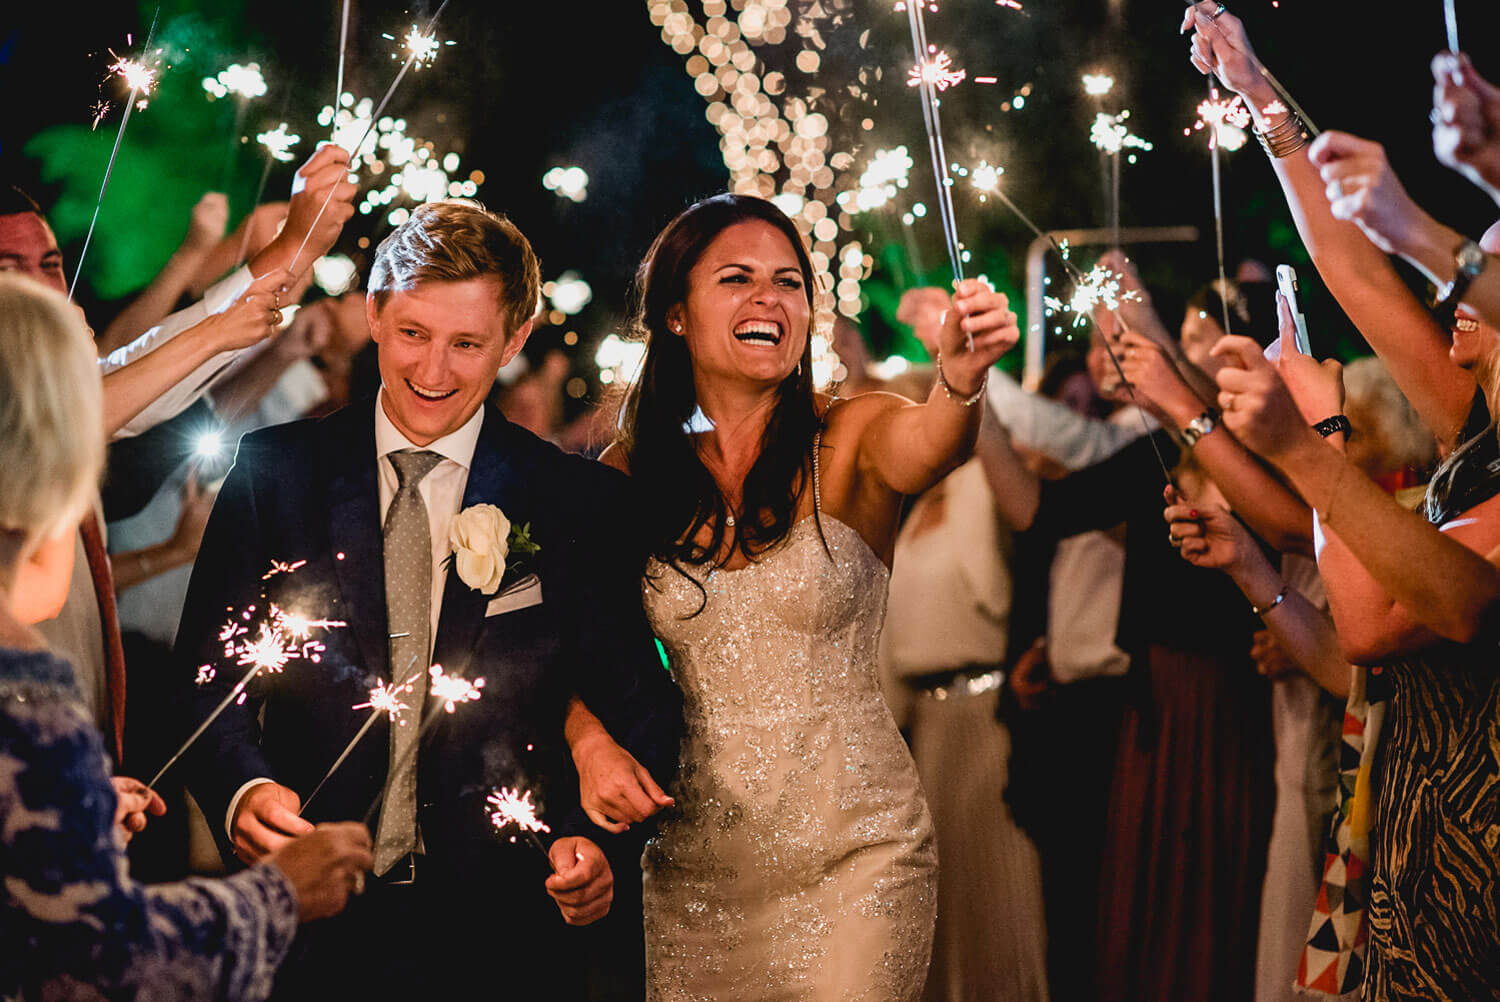 Destination Wedding in Portugal Sparklers